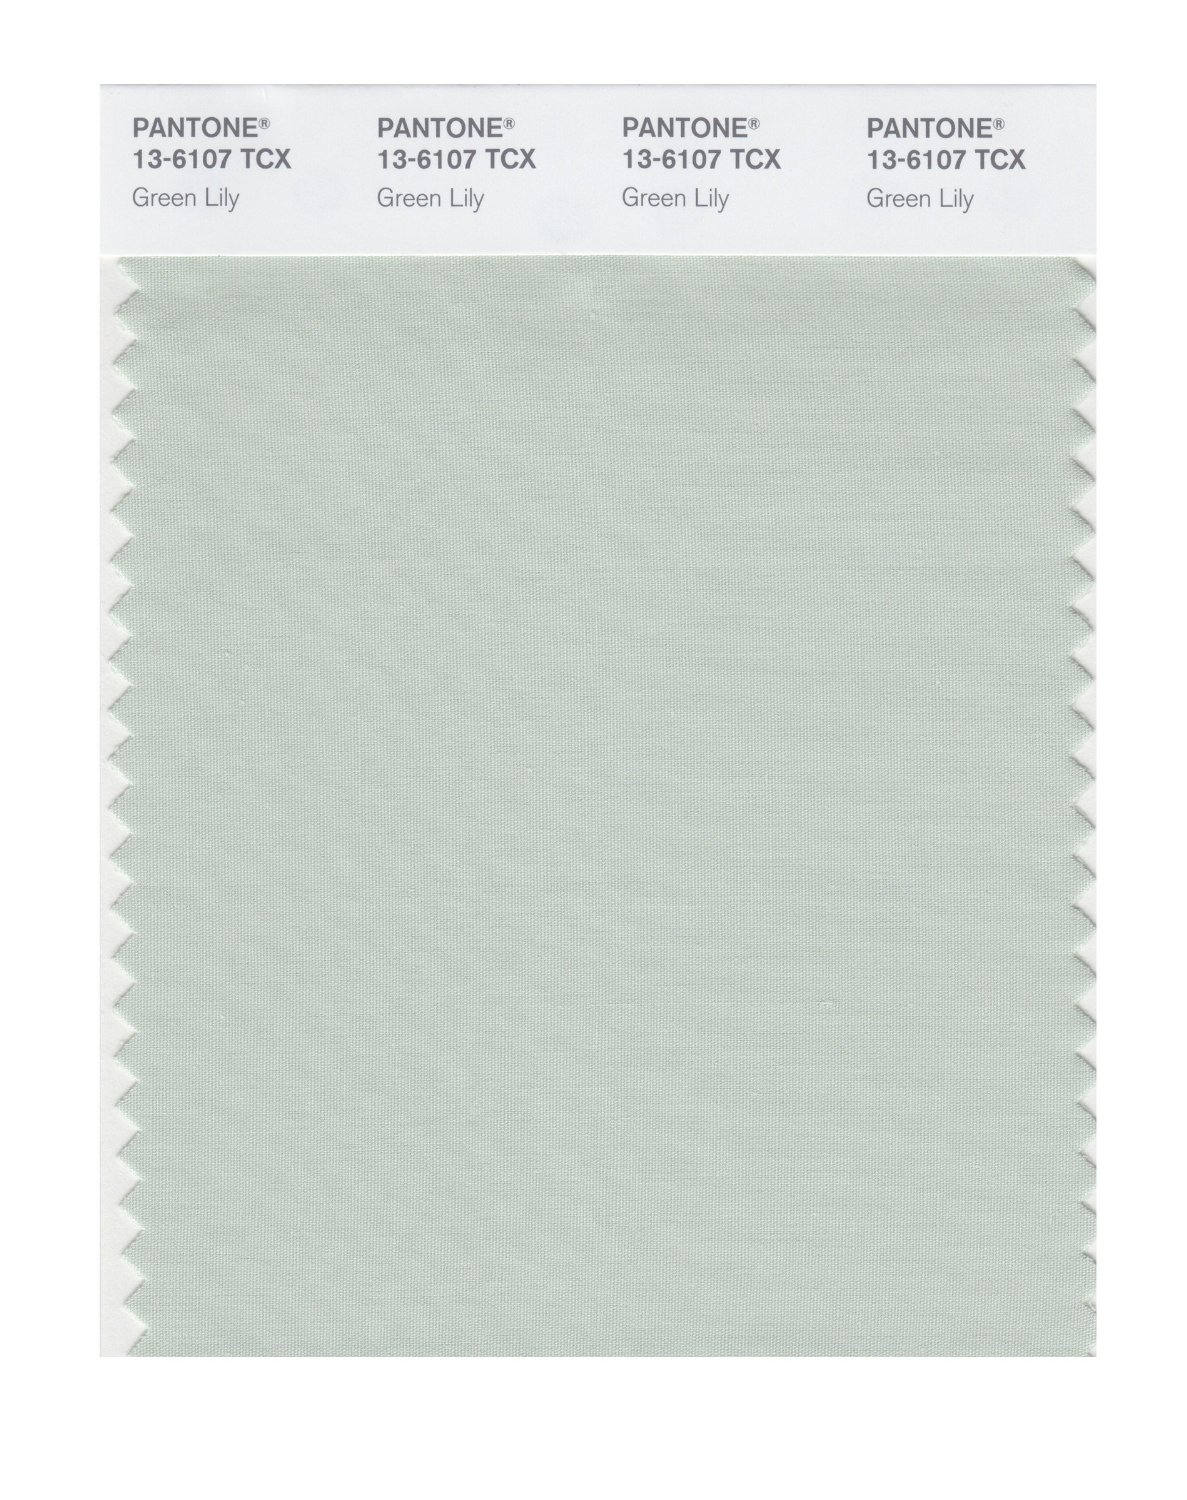 Pantone Smart Swatch 13-6107 Green Lily